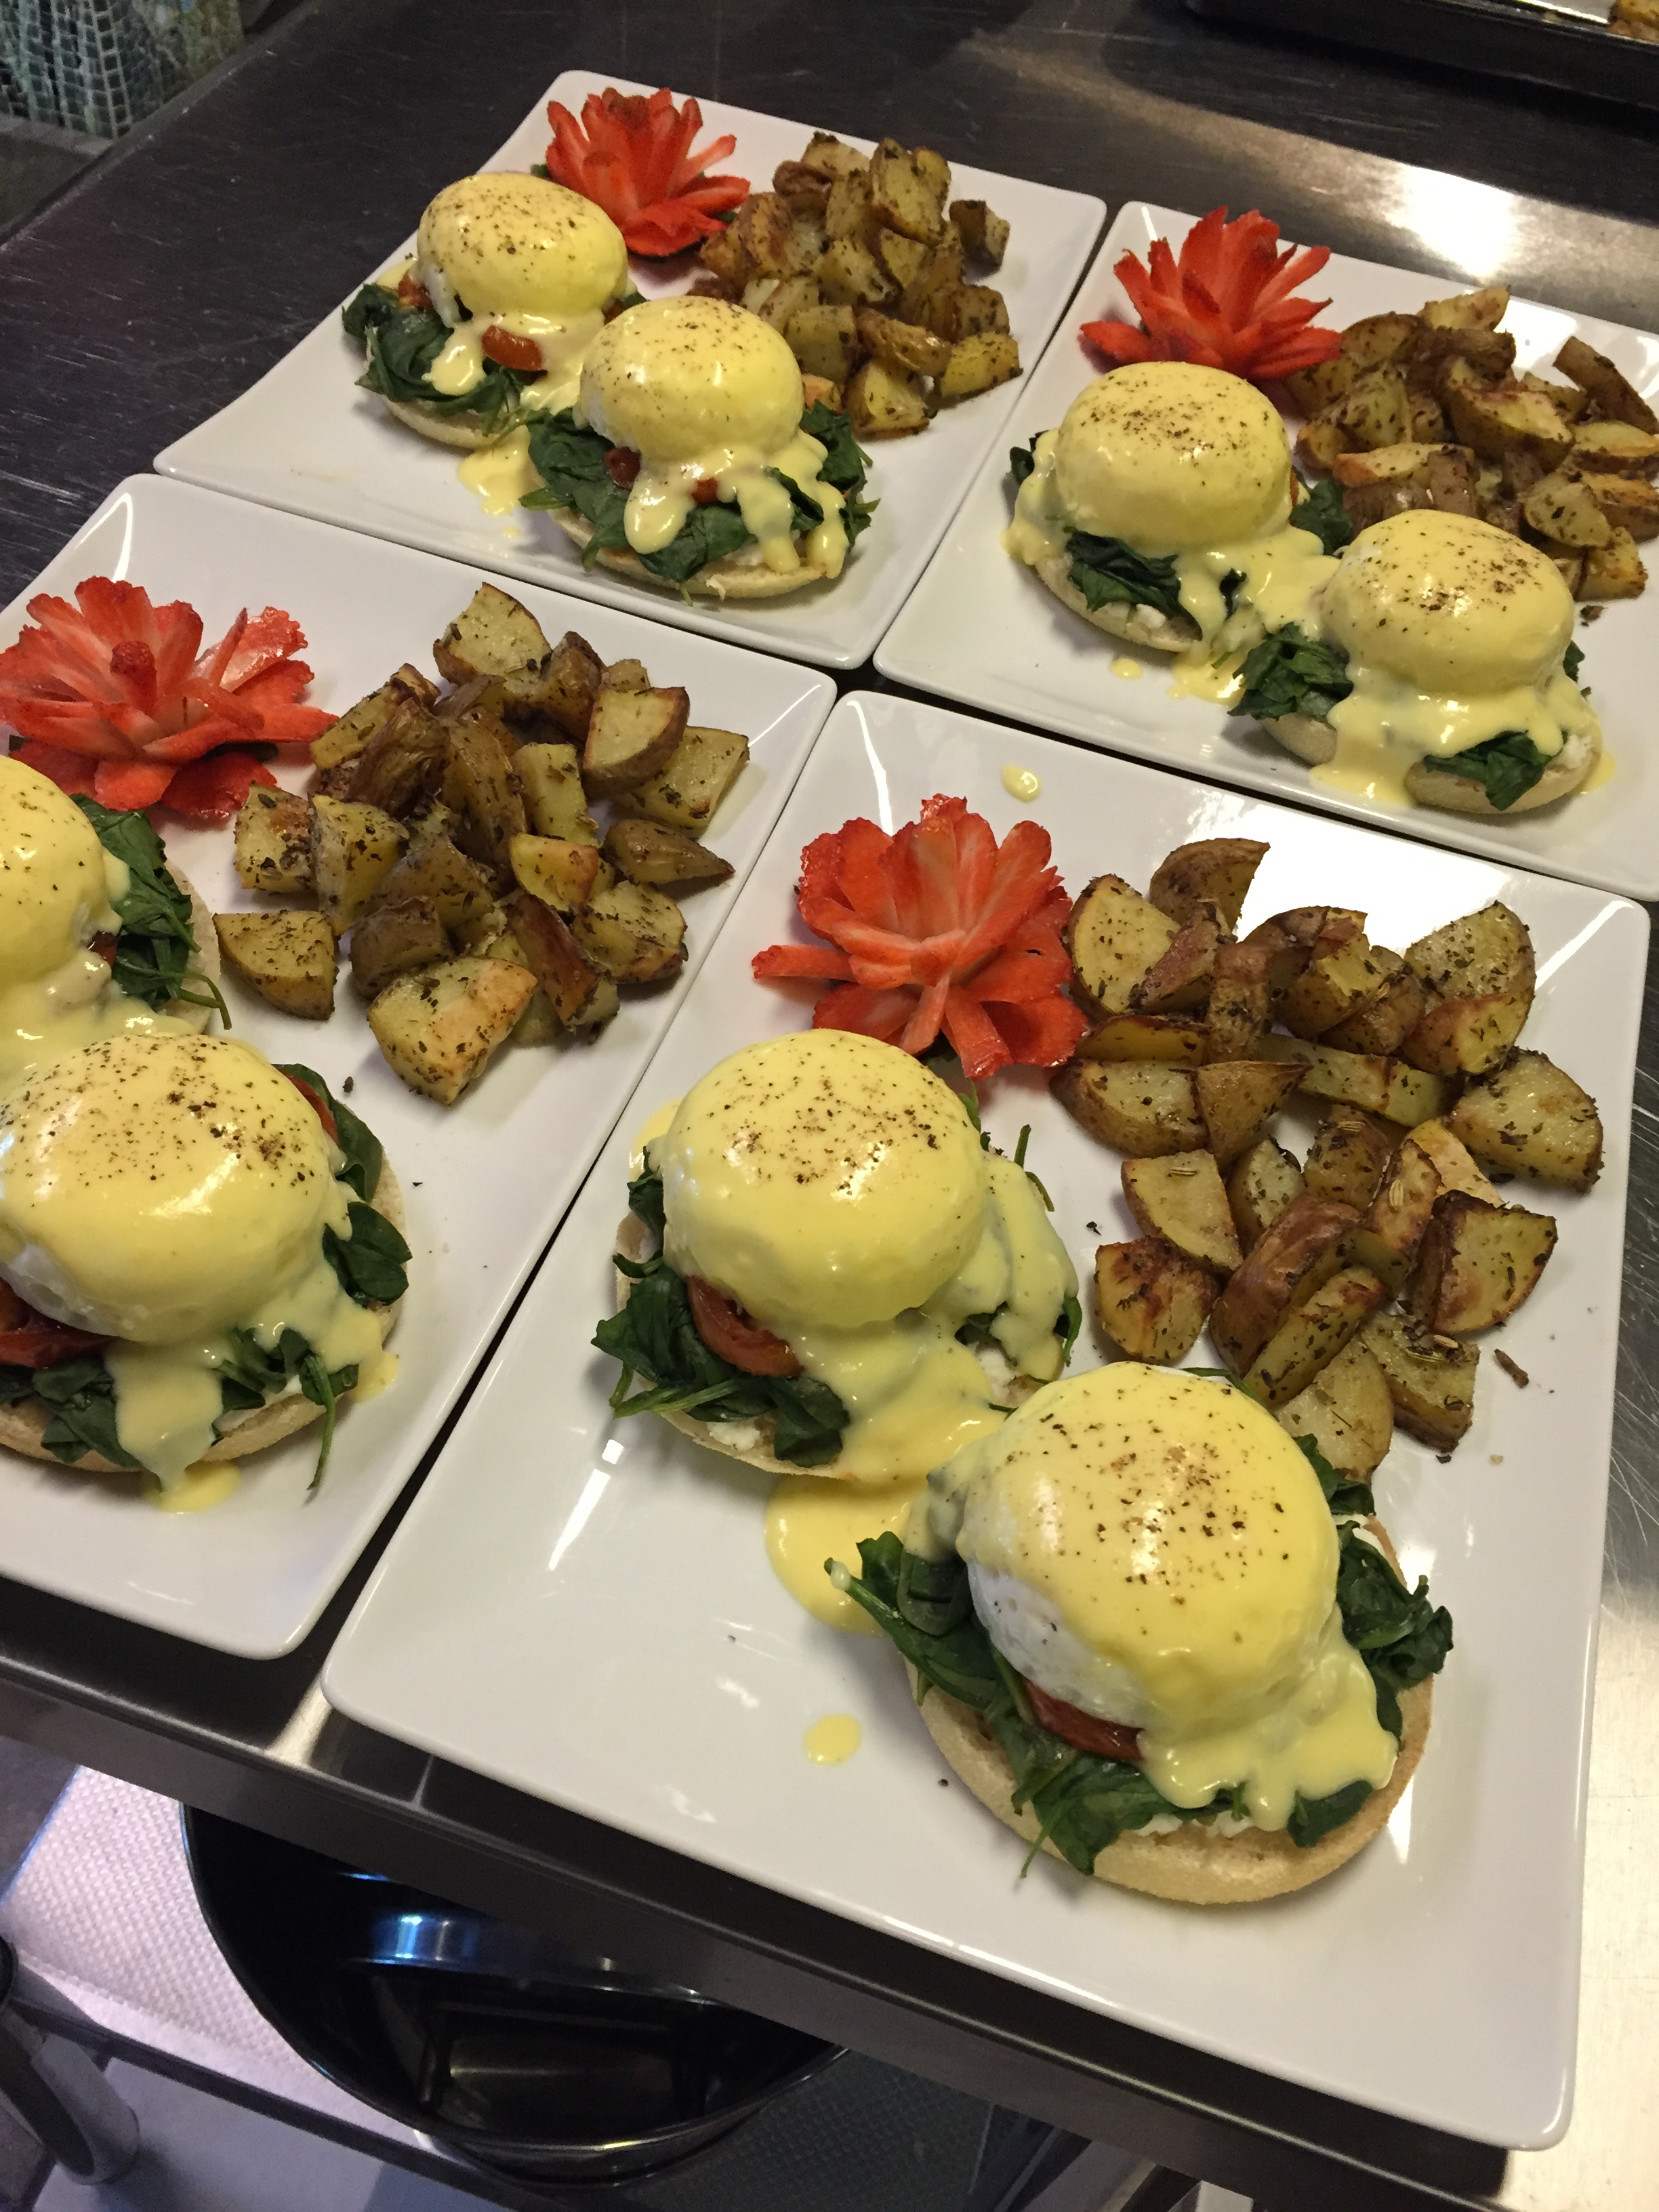 Our classically-prepared Eggs Florentine with bistro-style seasoned potatoes and a strawberry rose.